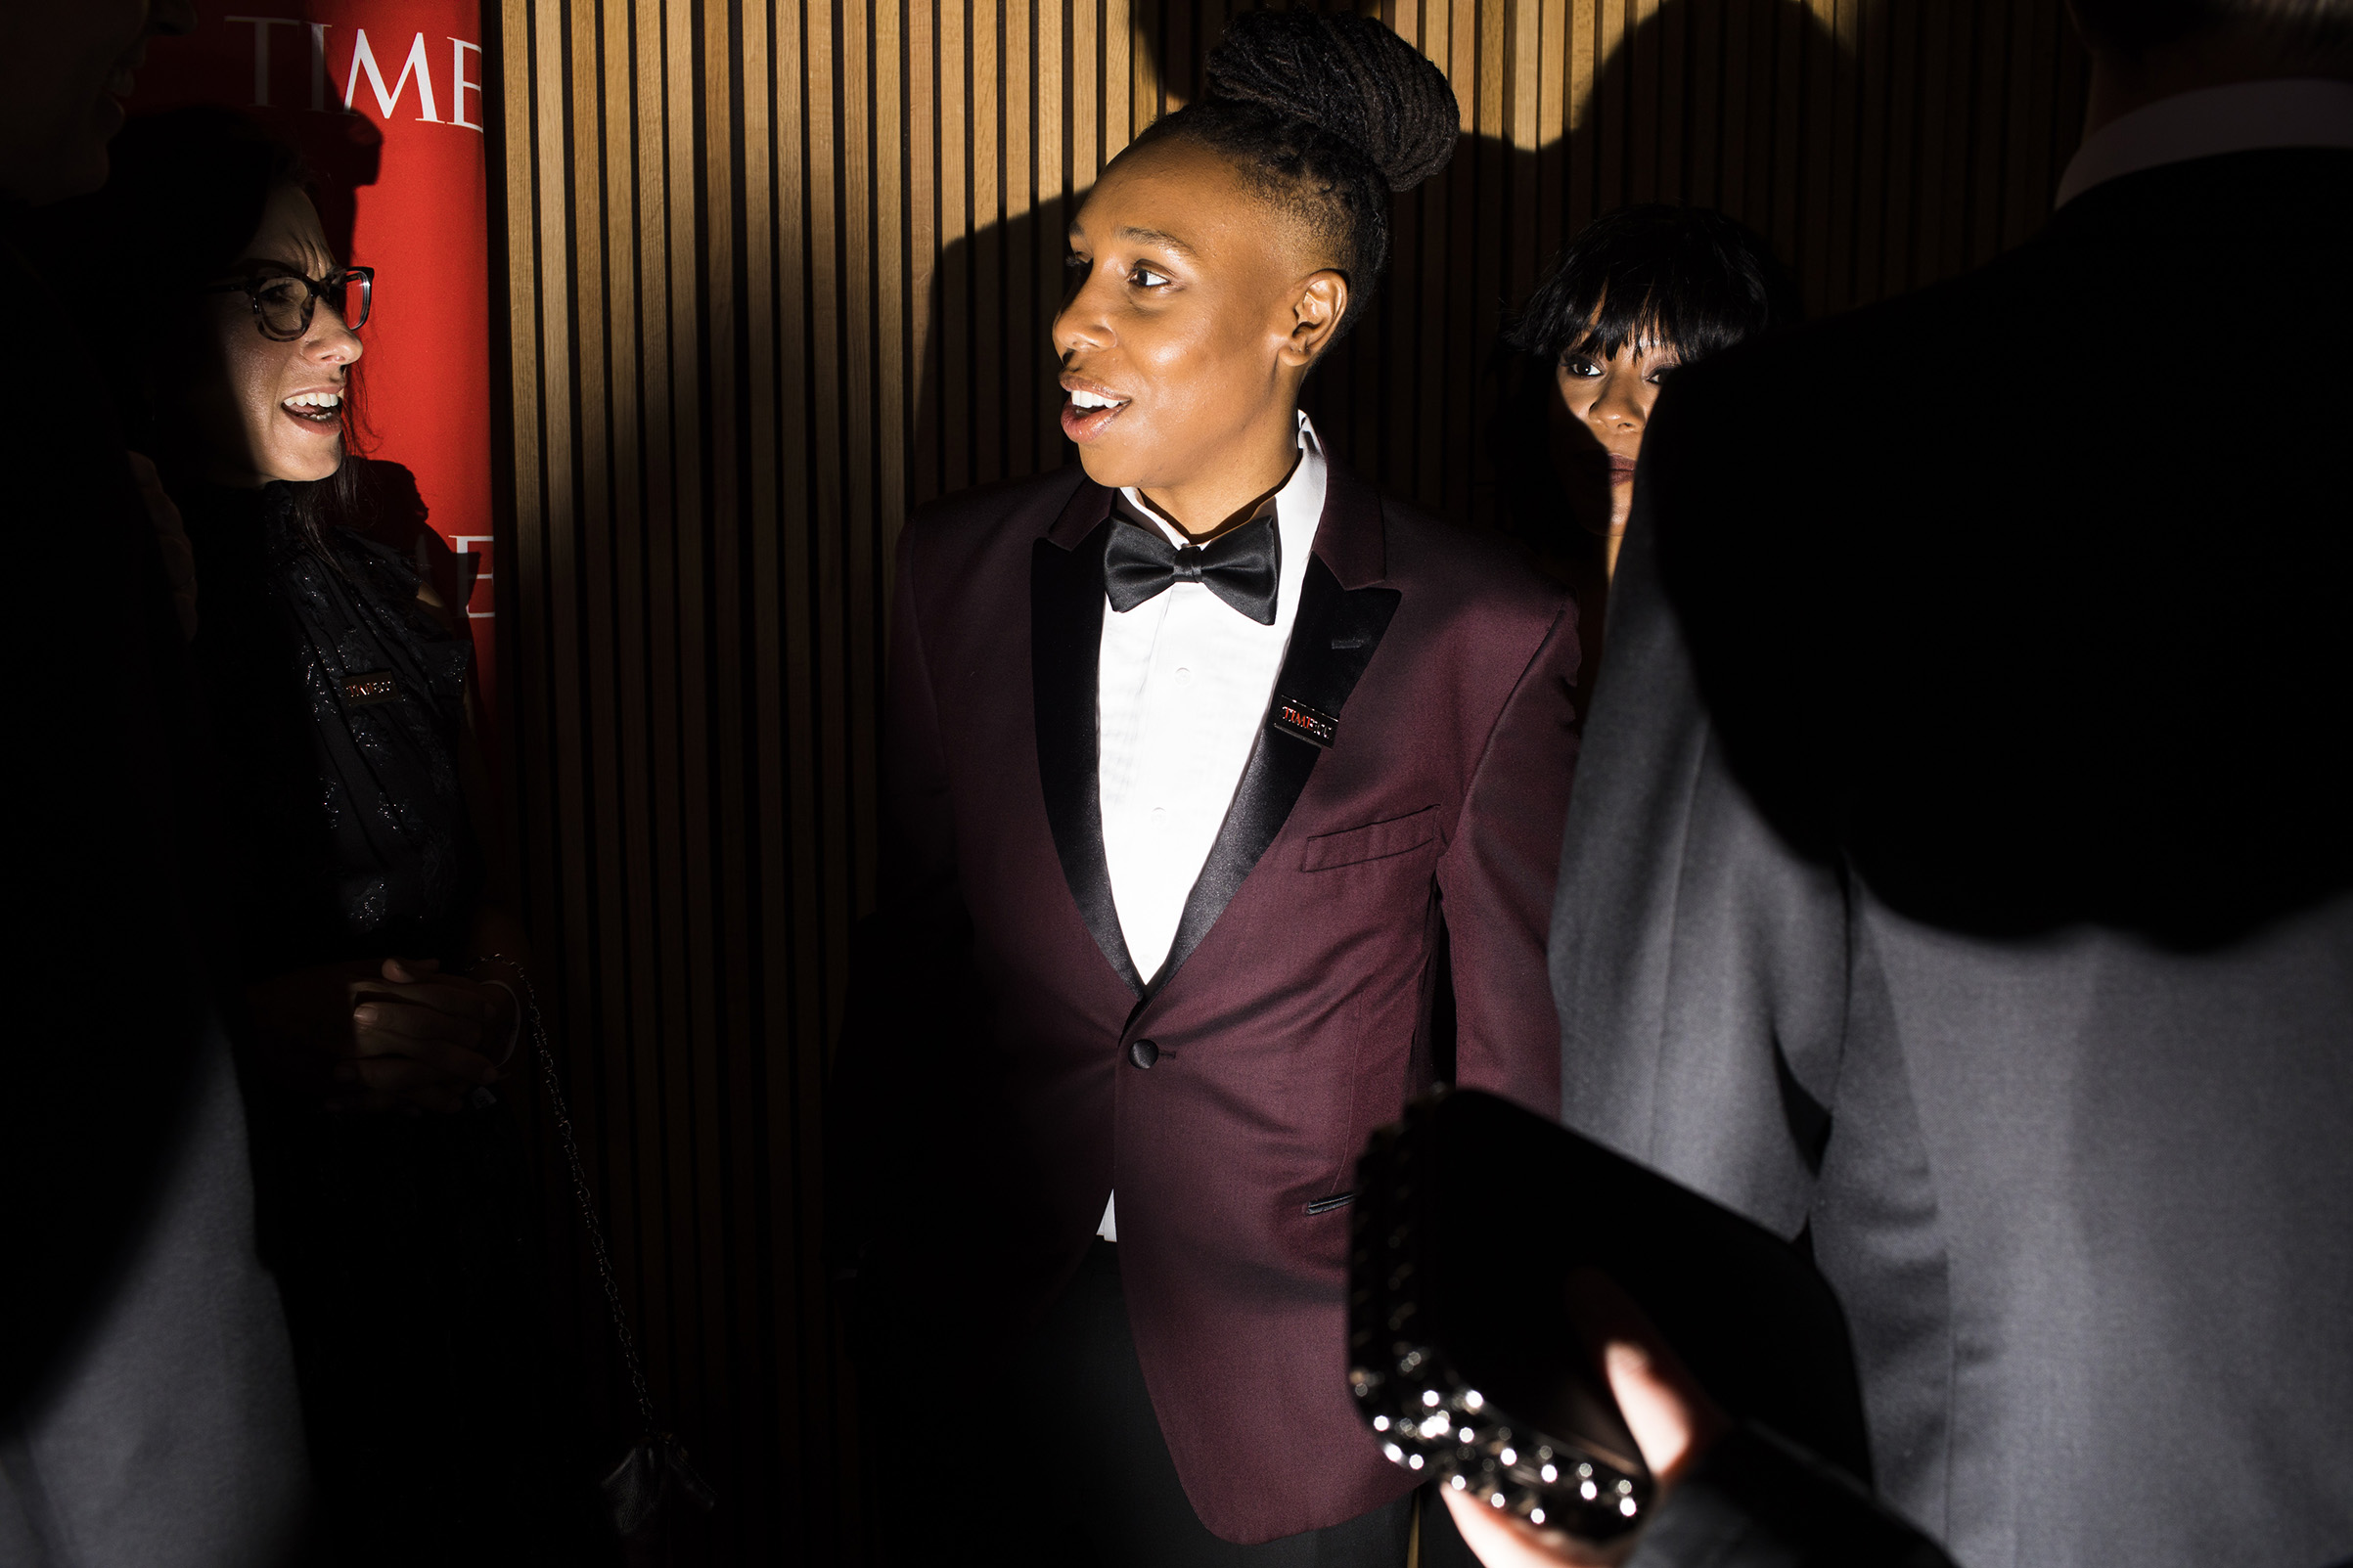 Lena Waithe at the Time 100 Gala at Jazz at Lincoln Center on April 24, 2018 in New York City.